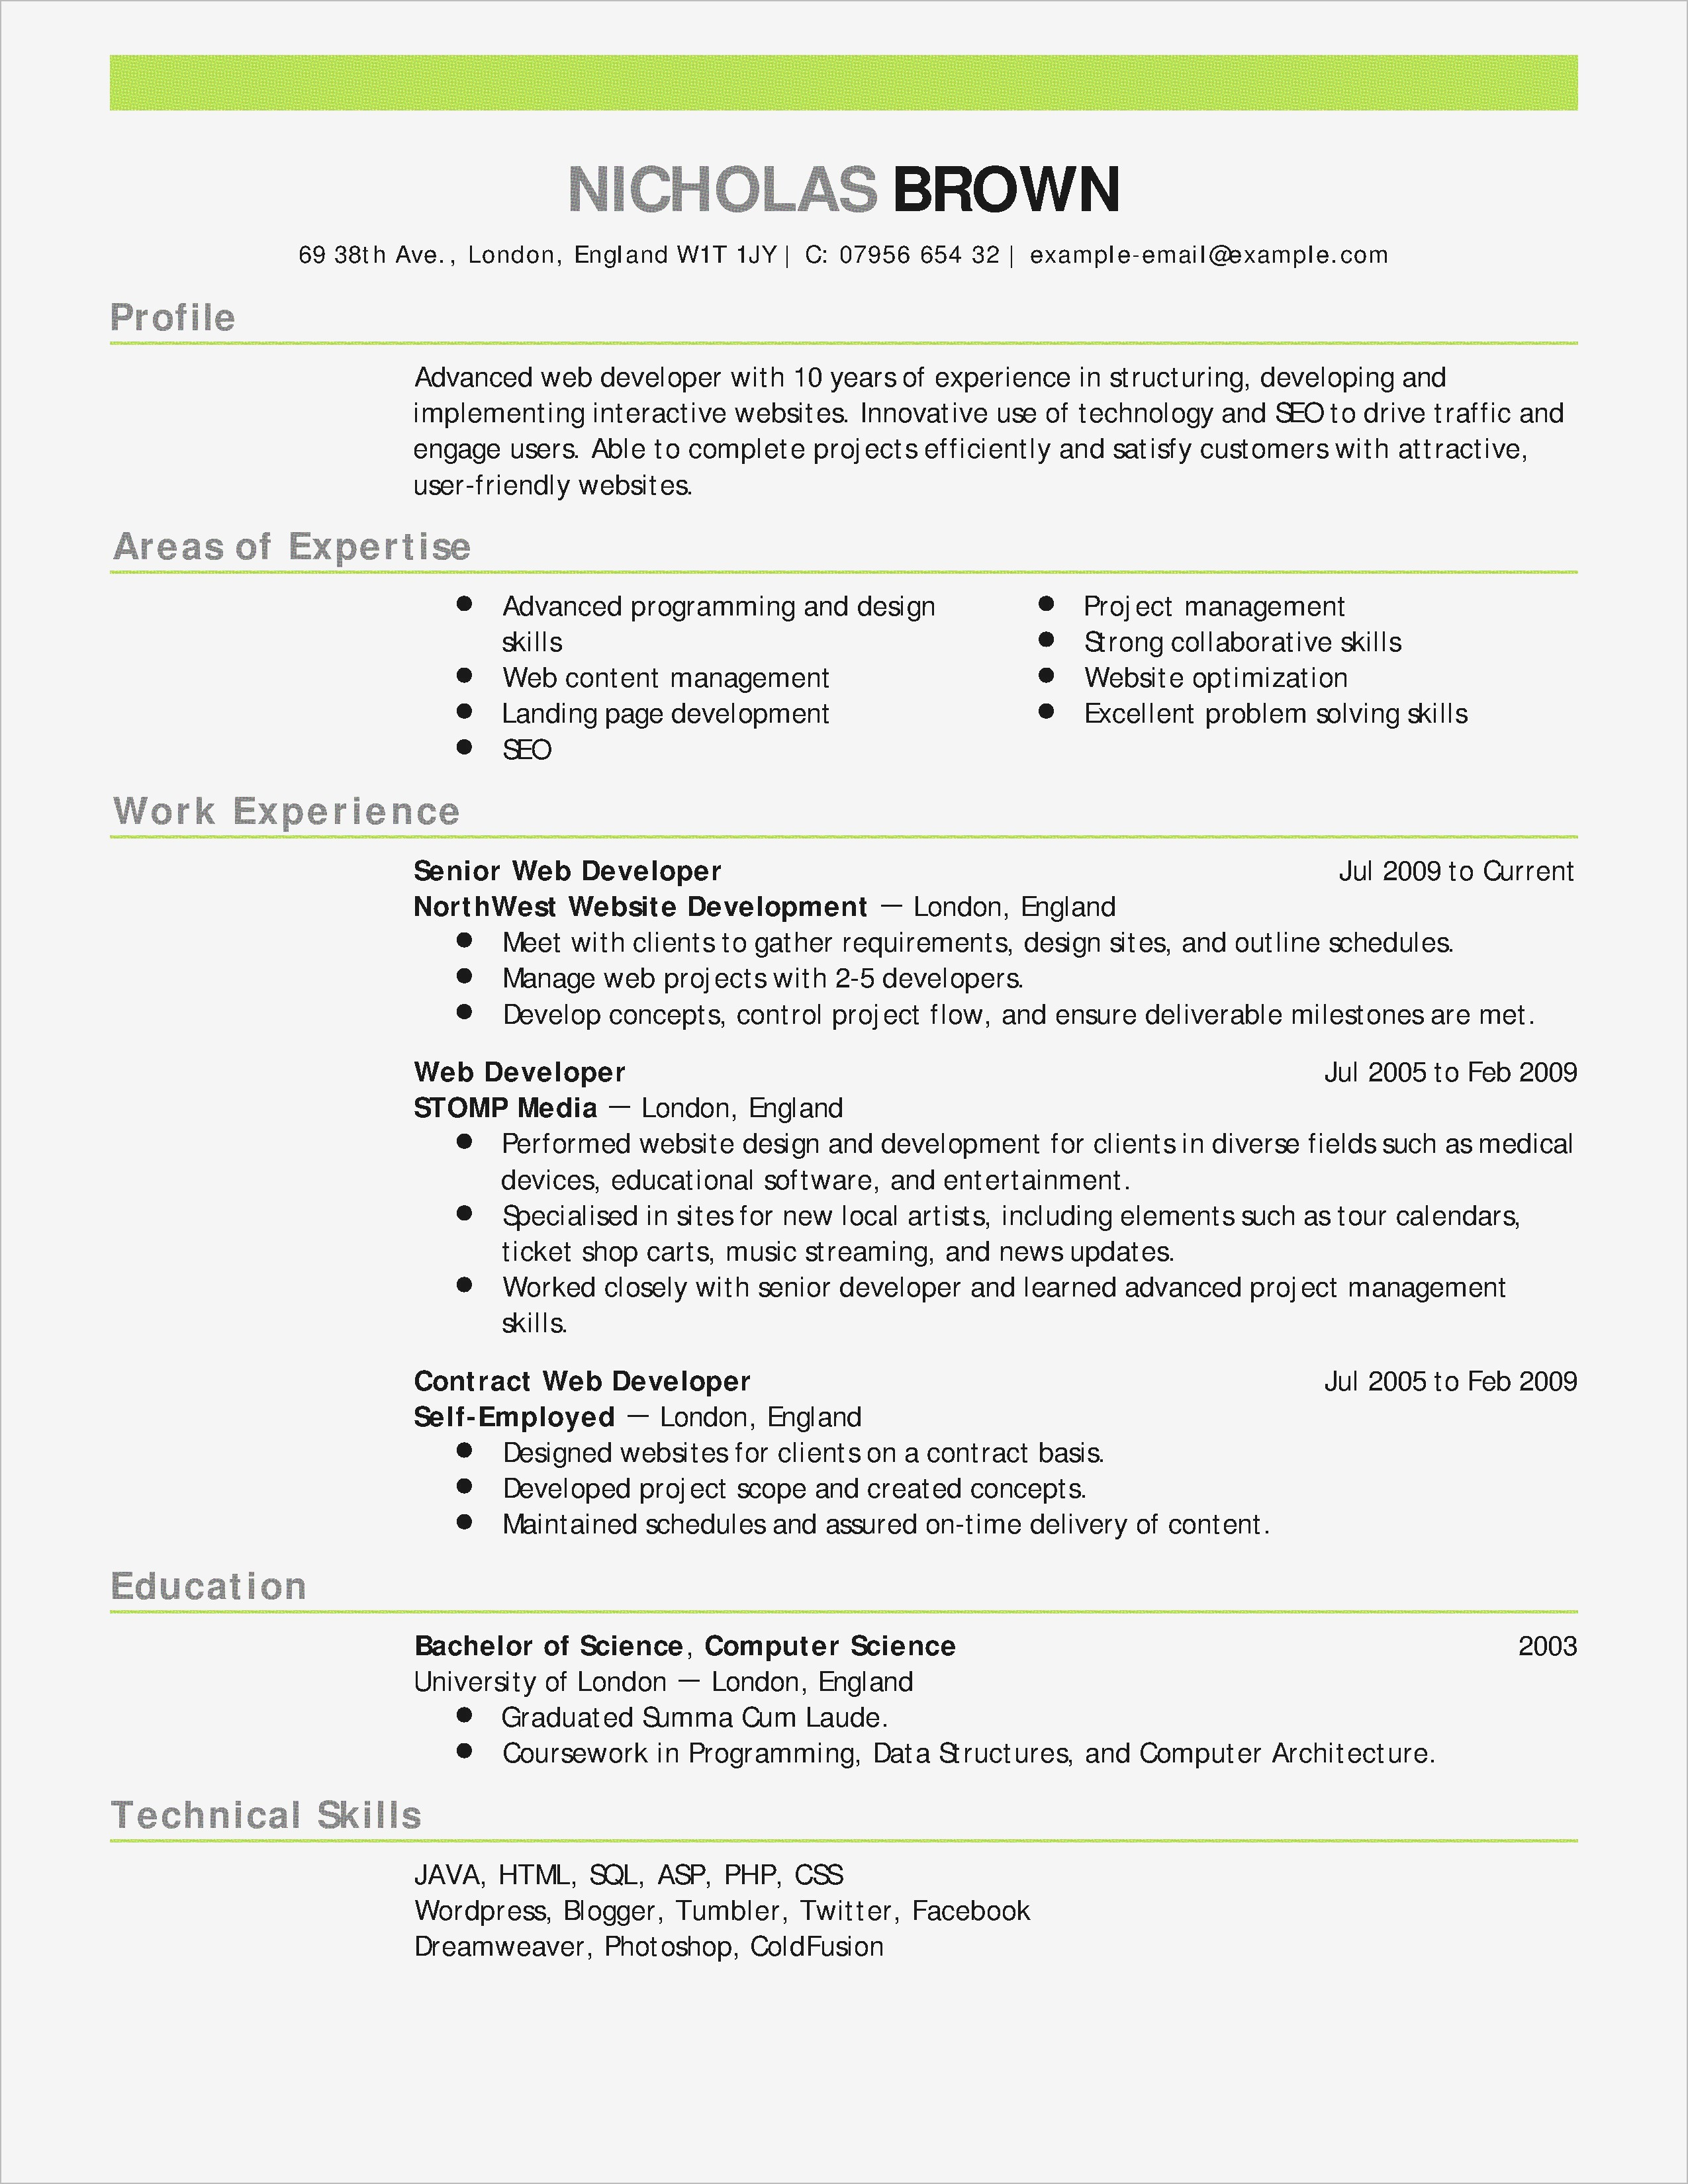 Letter Of Resignation Template Word 2007 - Beautiful Letter Resignation Template Microsoft